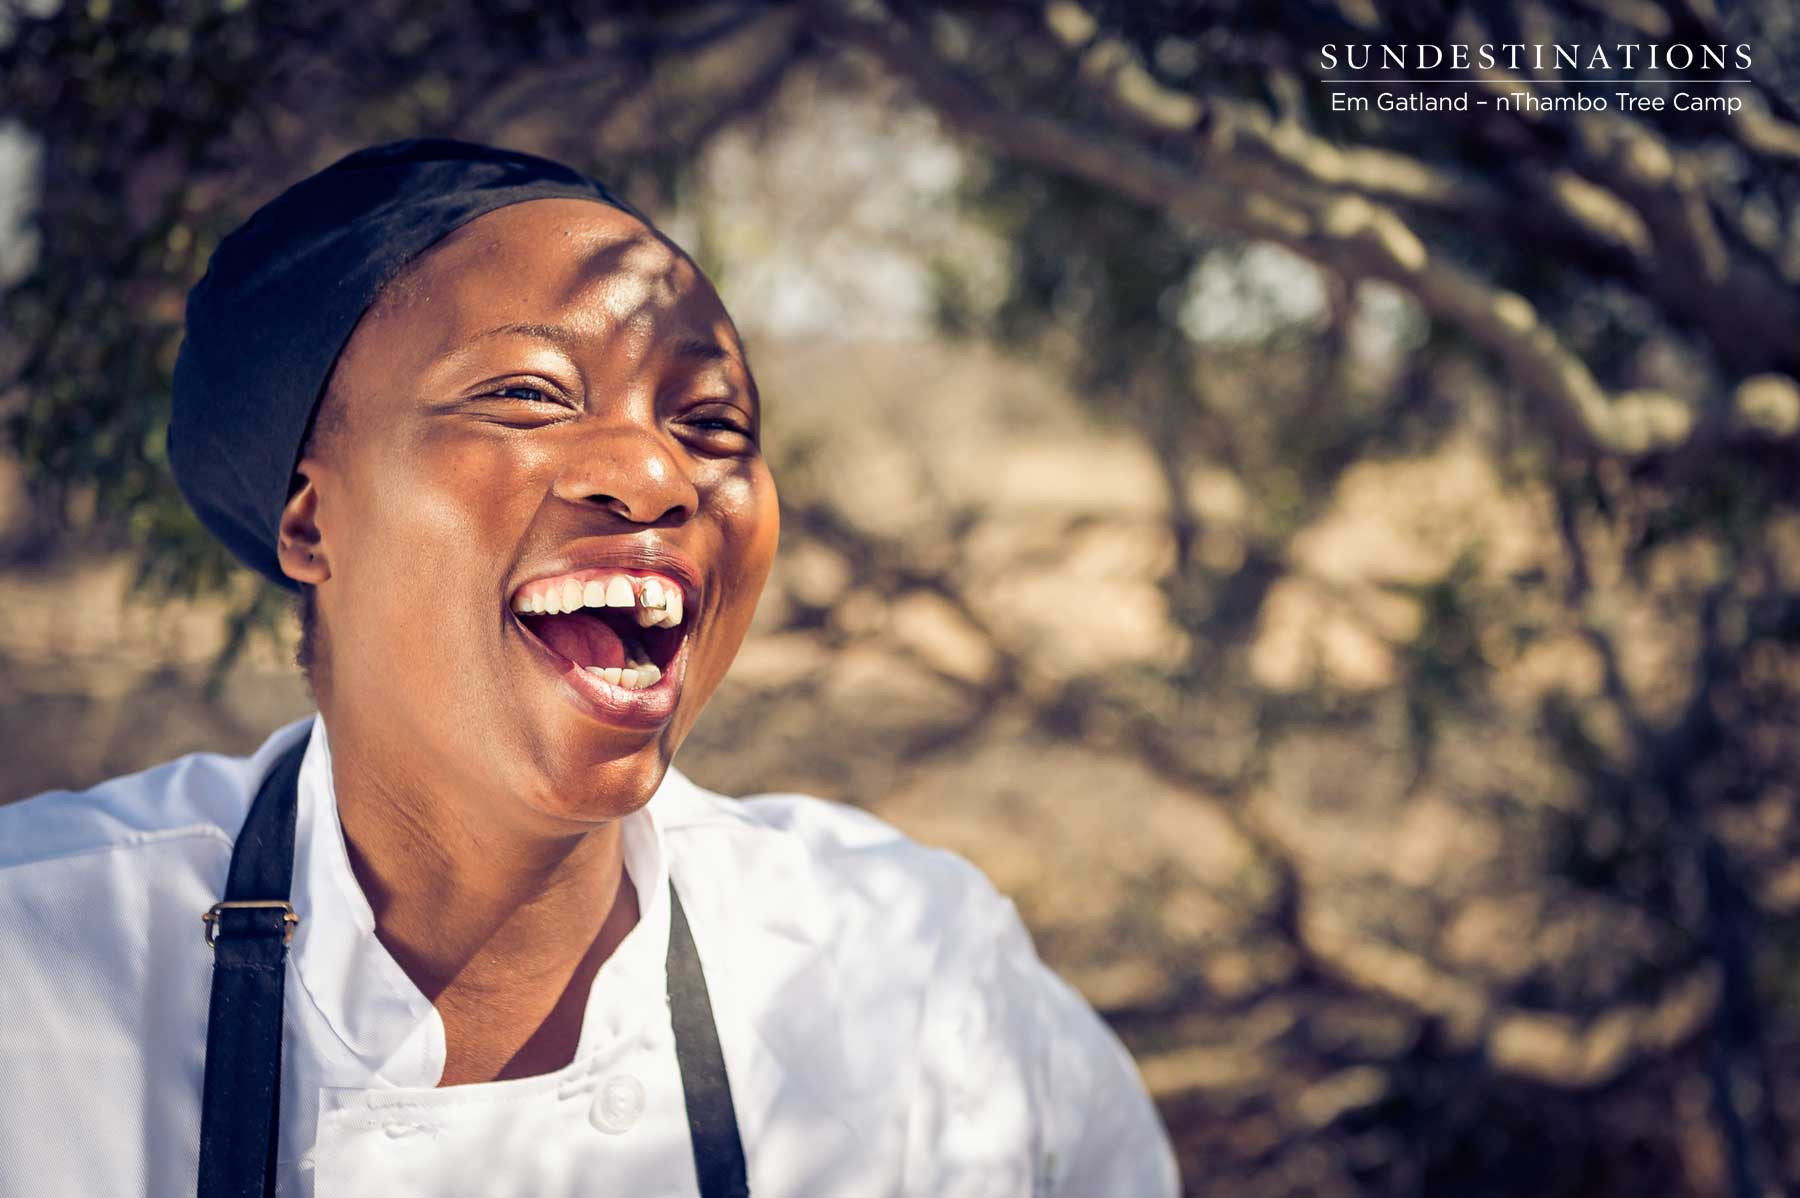 National Women's Day in South Africa : Meet Melita the Chef from nThambo